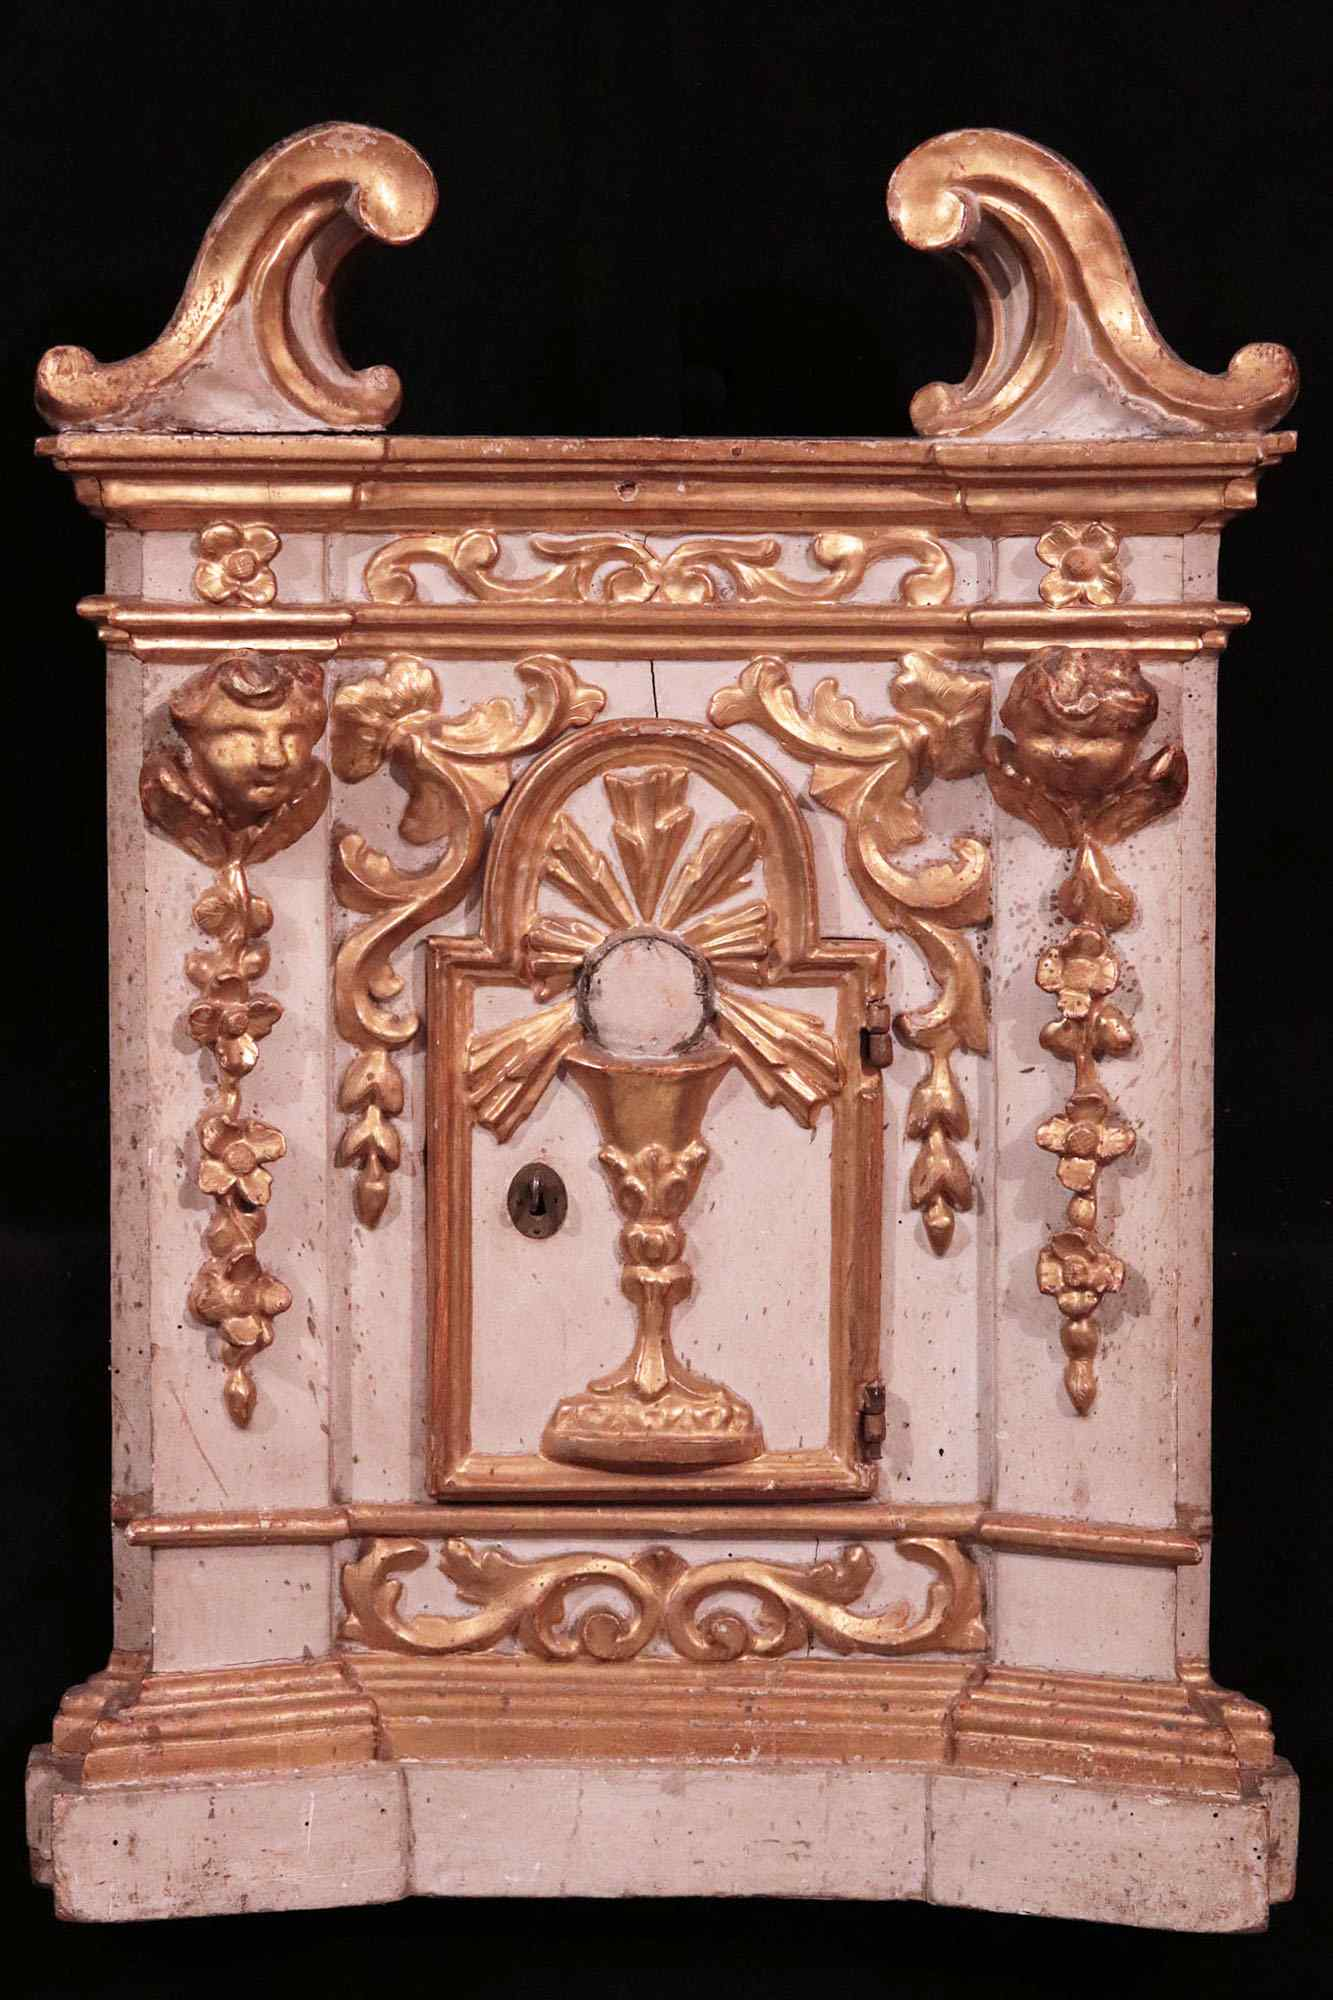 Lacquered and gilded tabernacle, Tuscany, Louis XIV